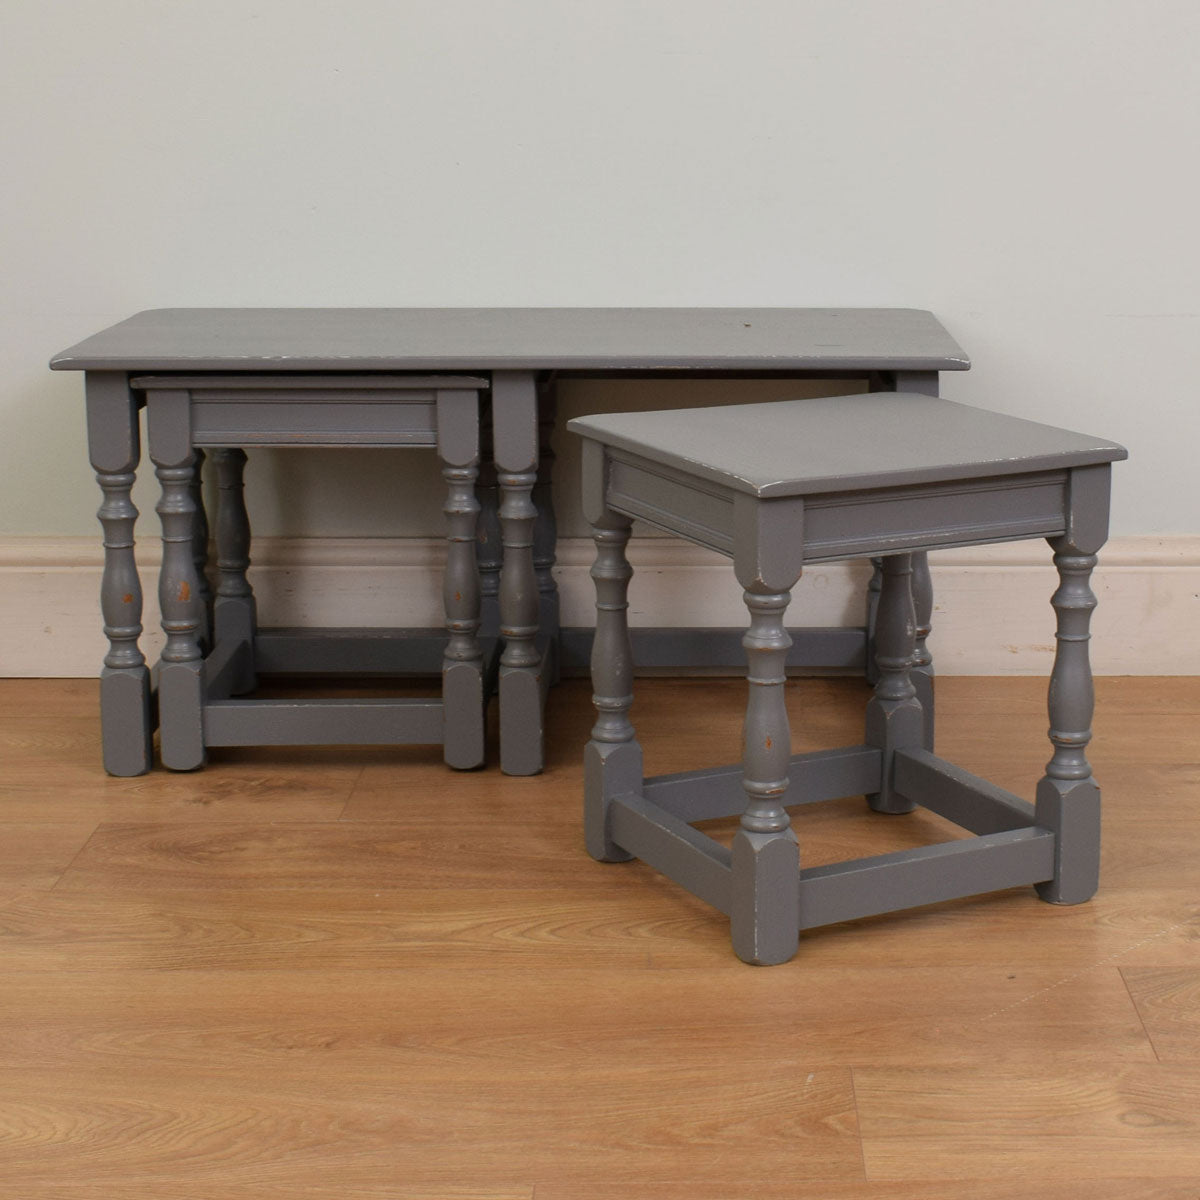 Painted Long John nest of tables